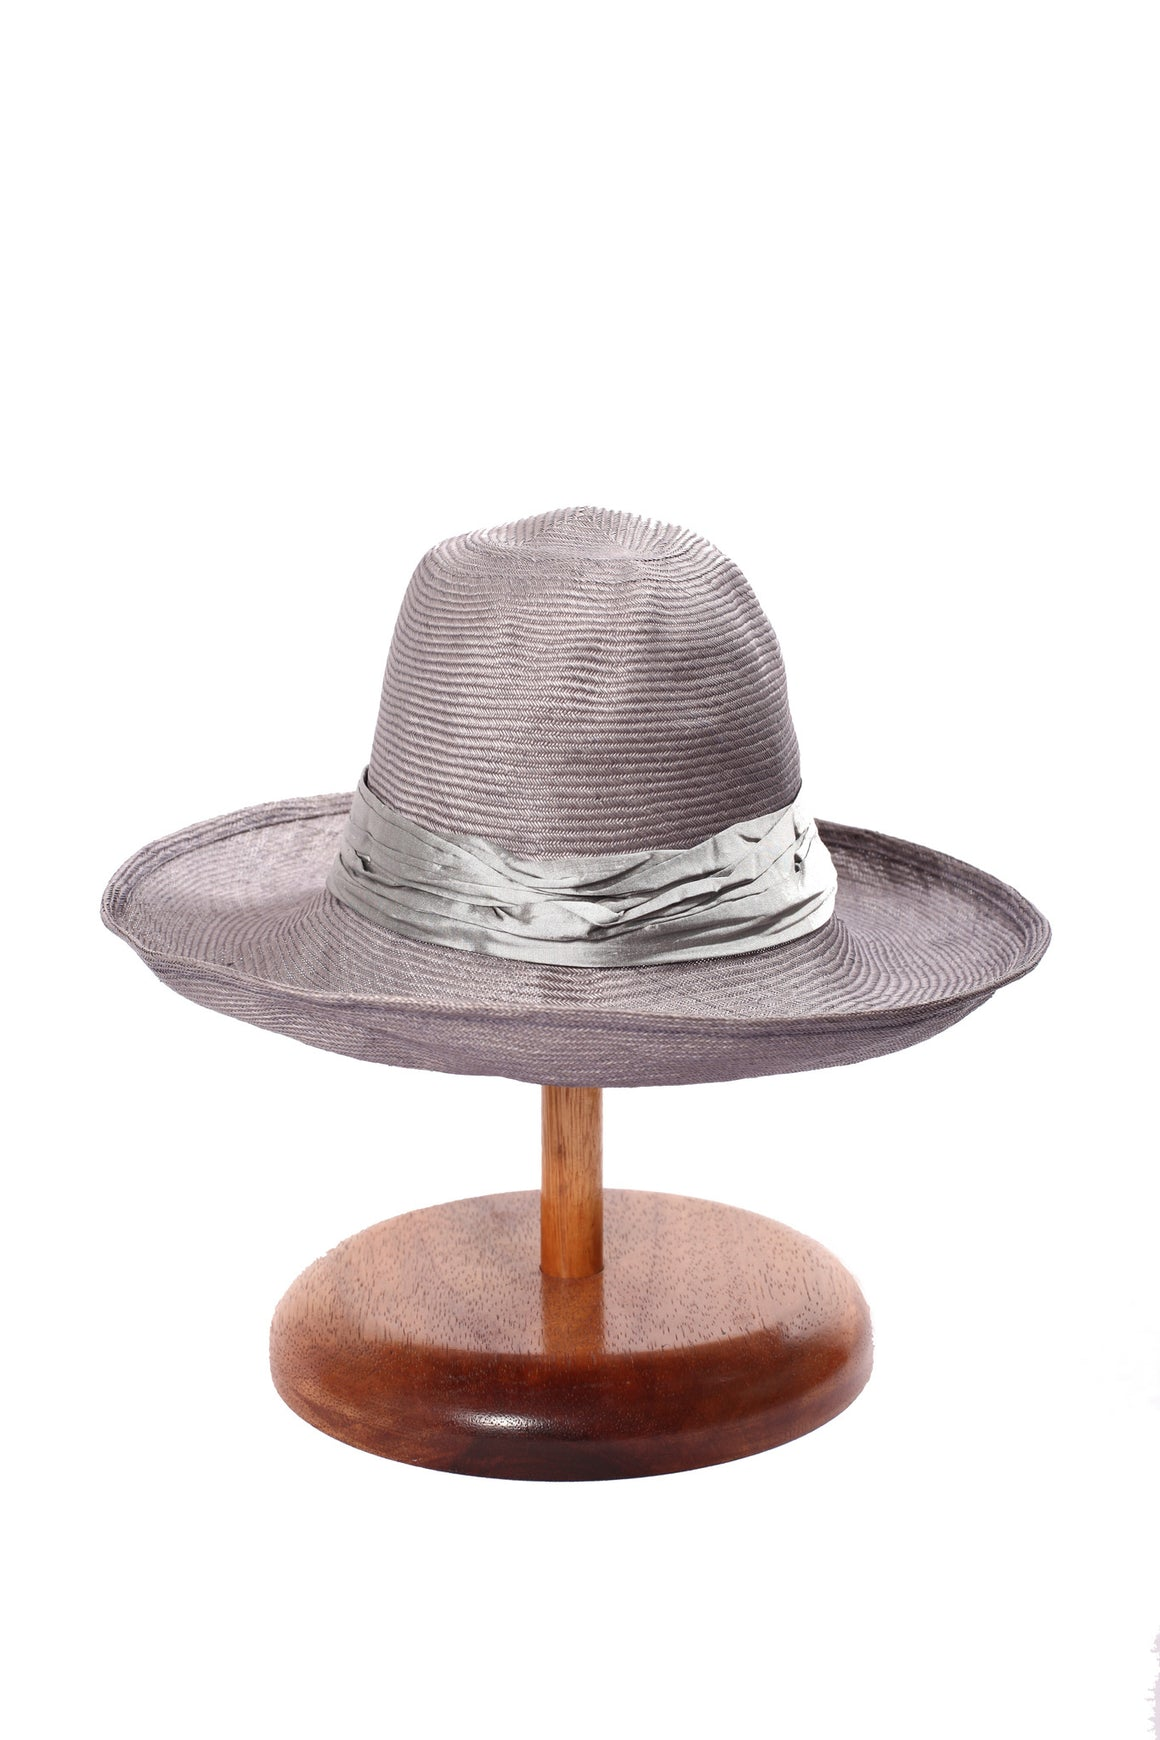 Maya Neumann Squash Hat - Grey Blue